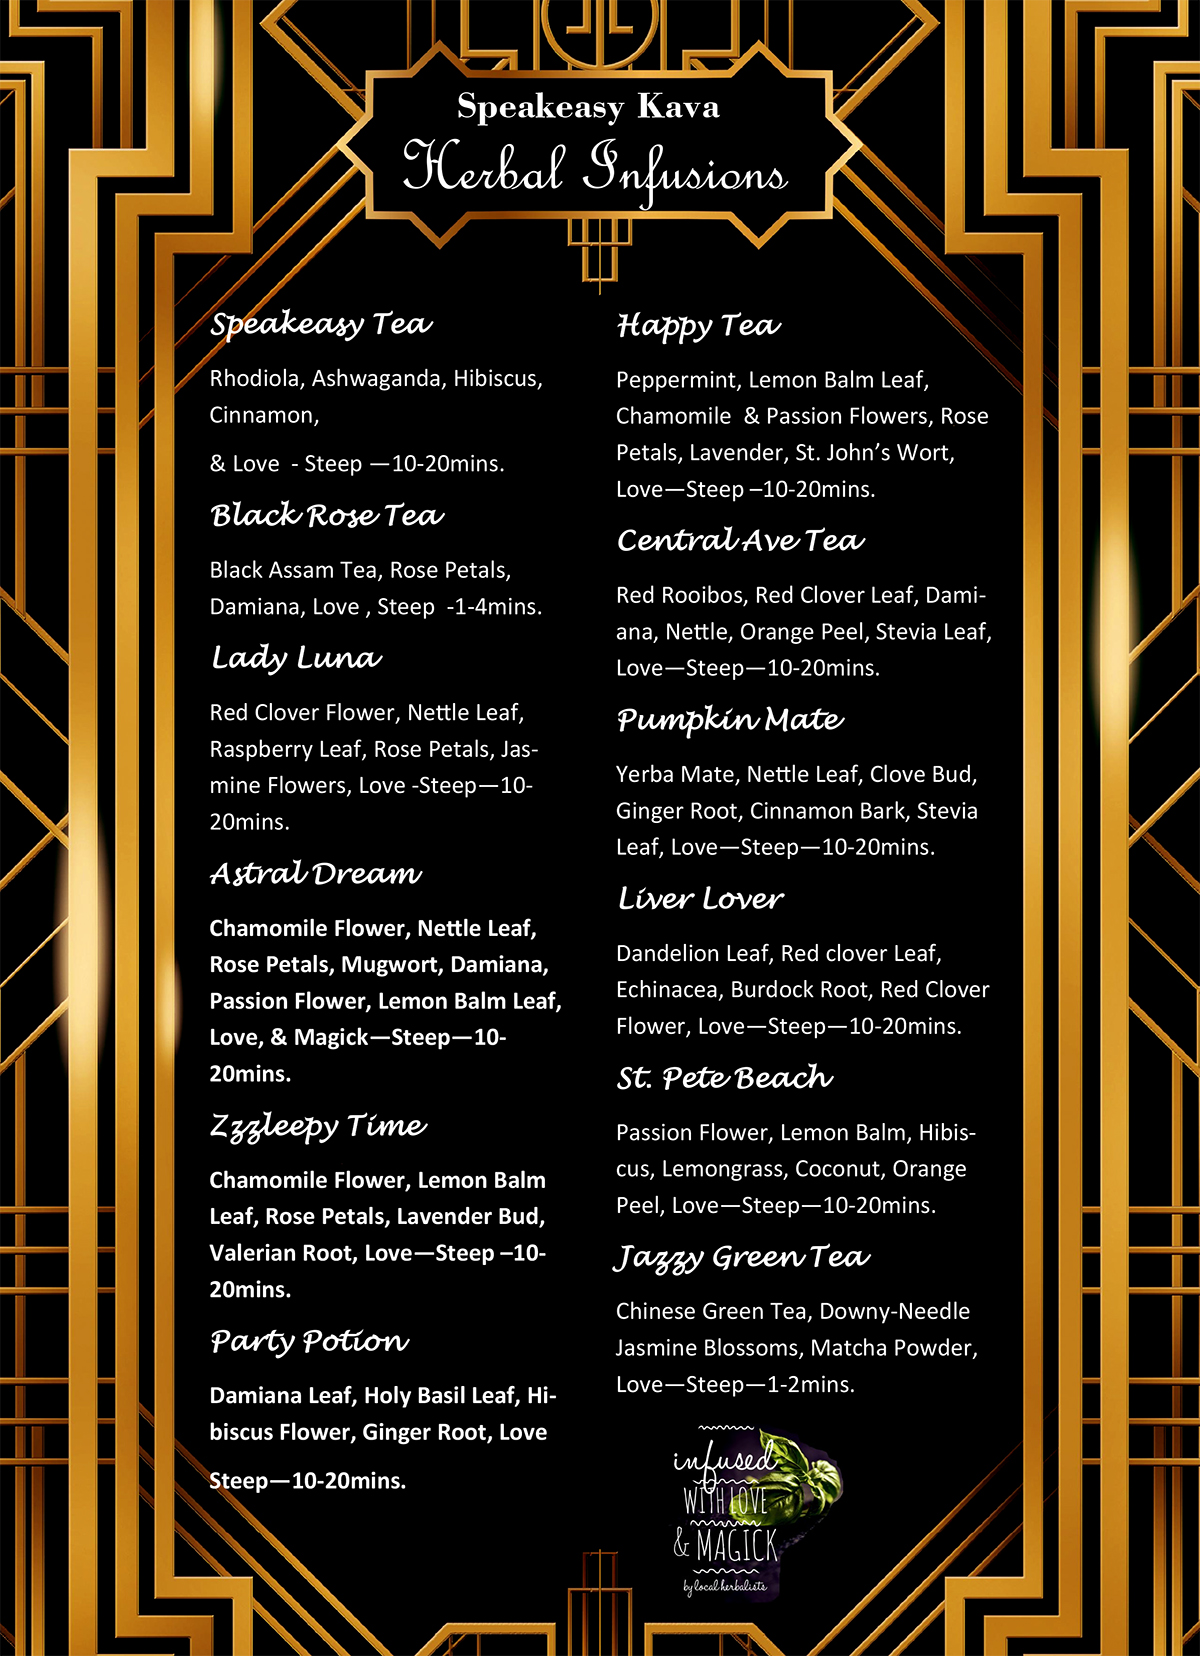 speakeasy kava looseleaf tea bar menu